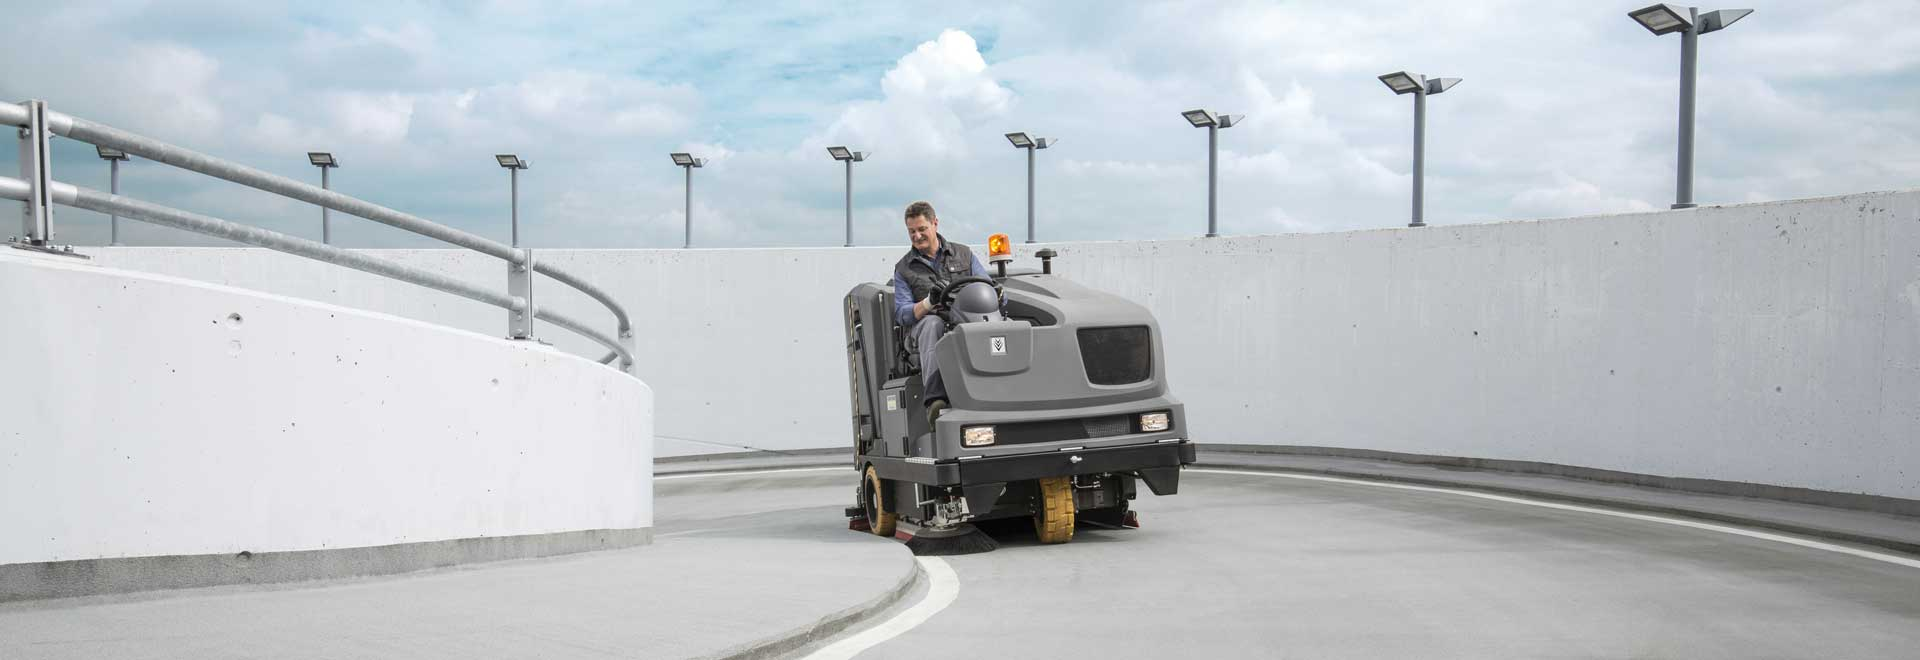 Ride on sweeper cleaning tarmac